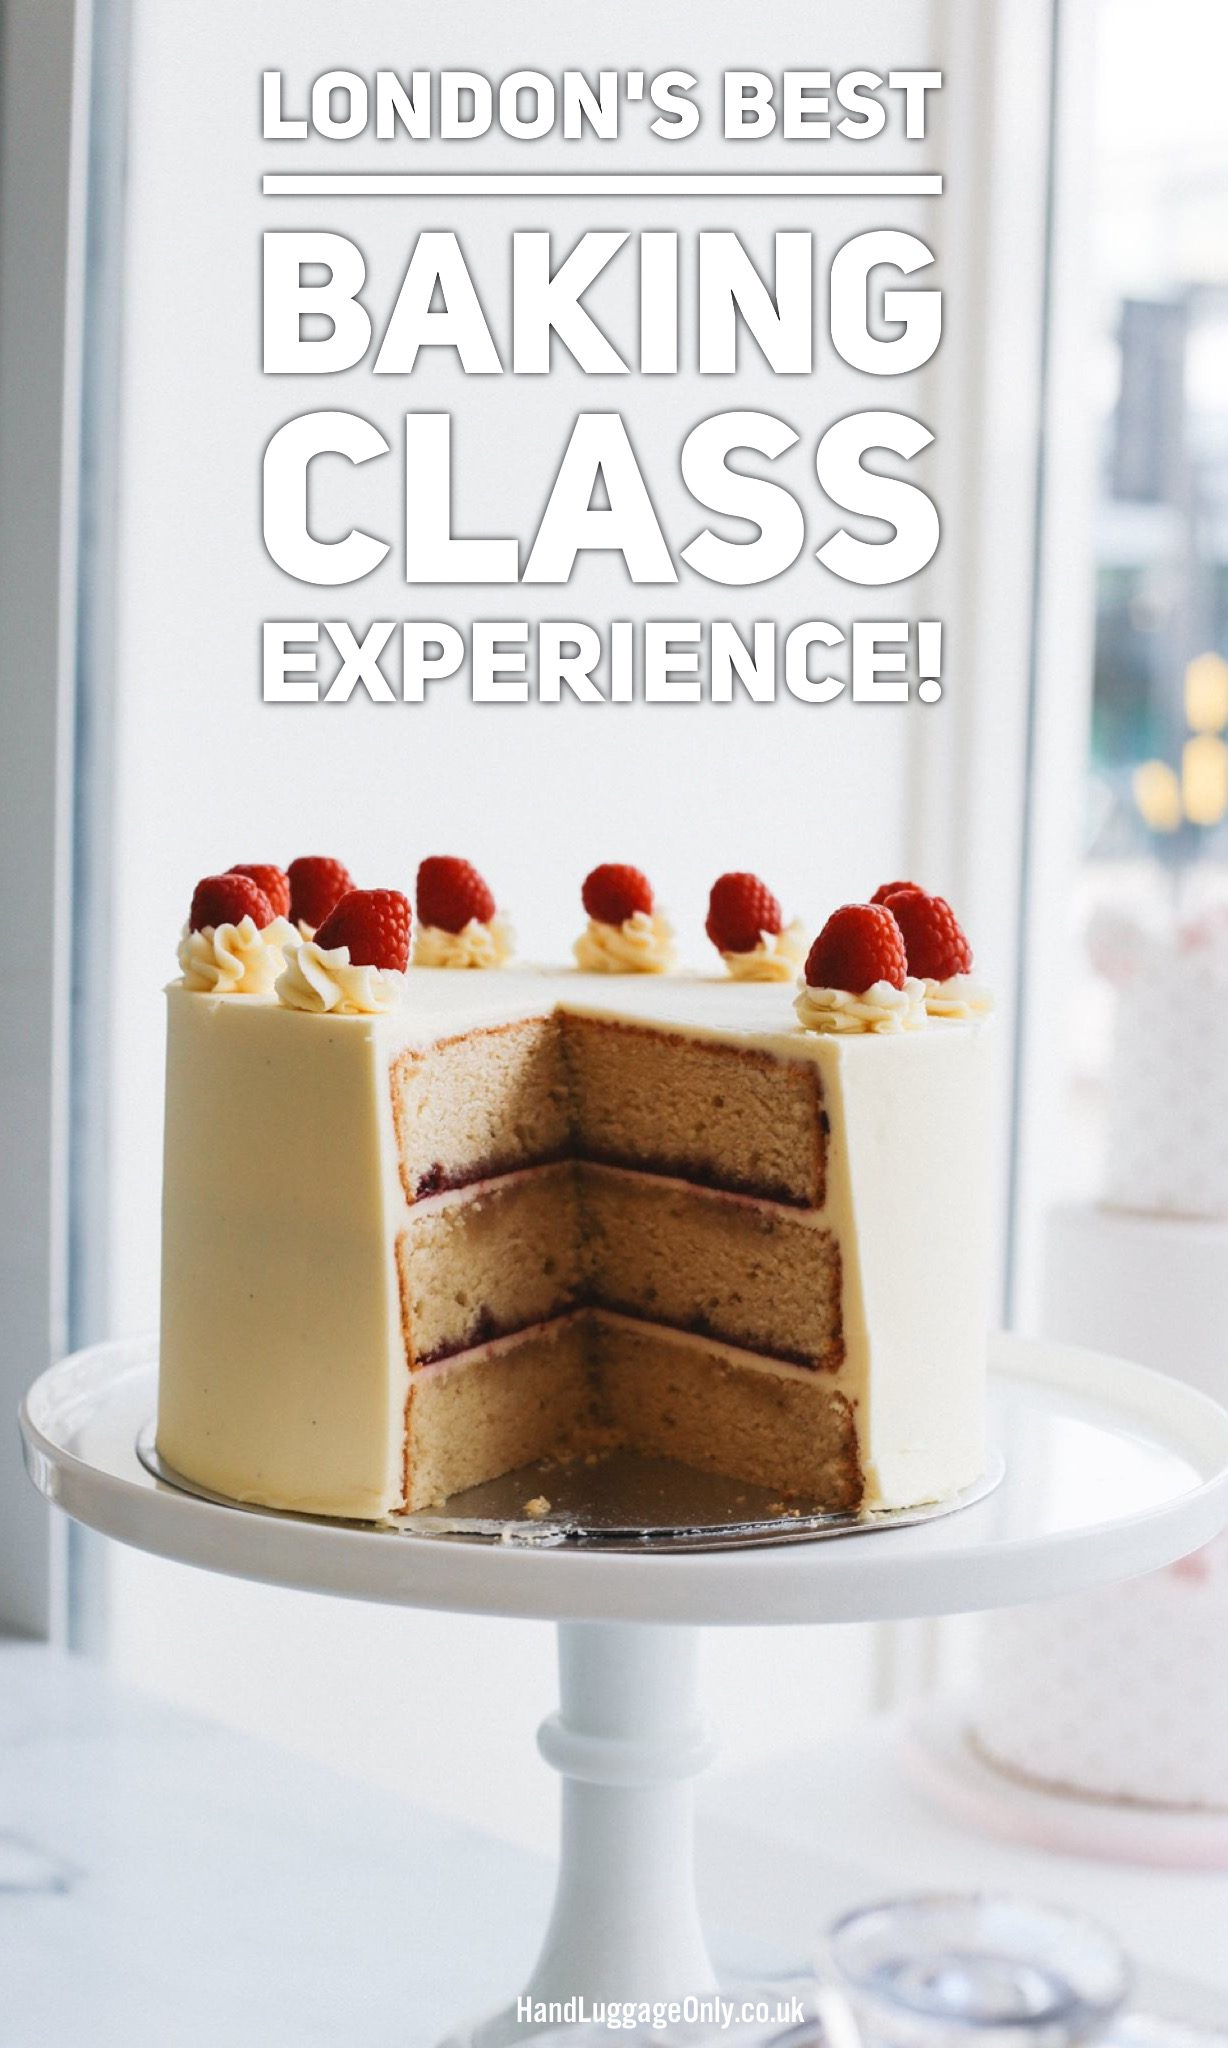 Baking Class Madeline's Cake Boutique London Richmond (1)